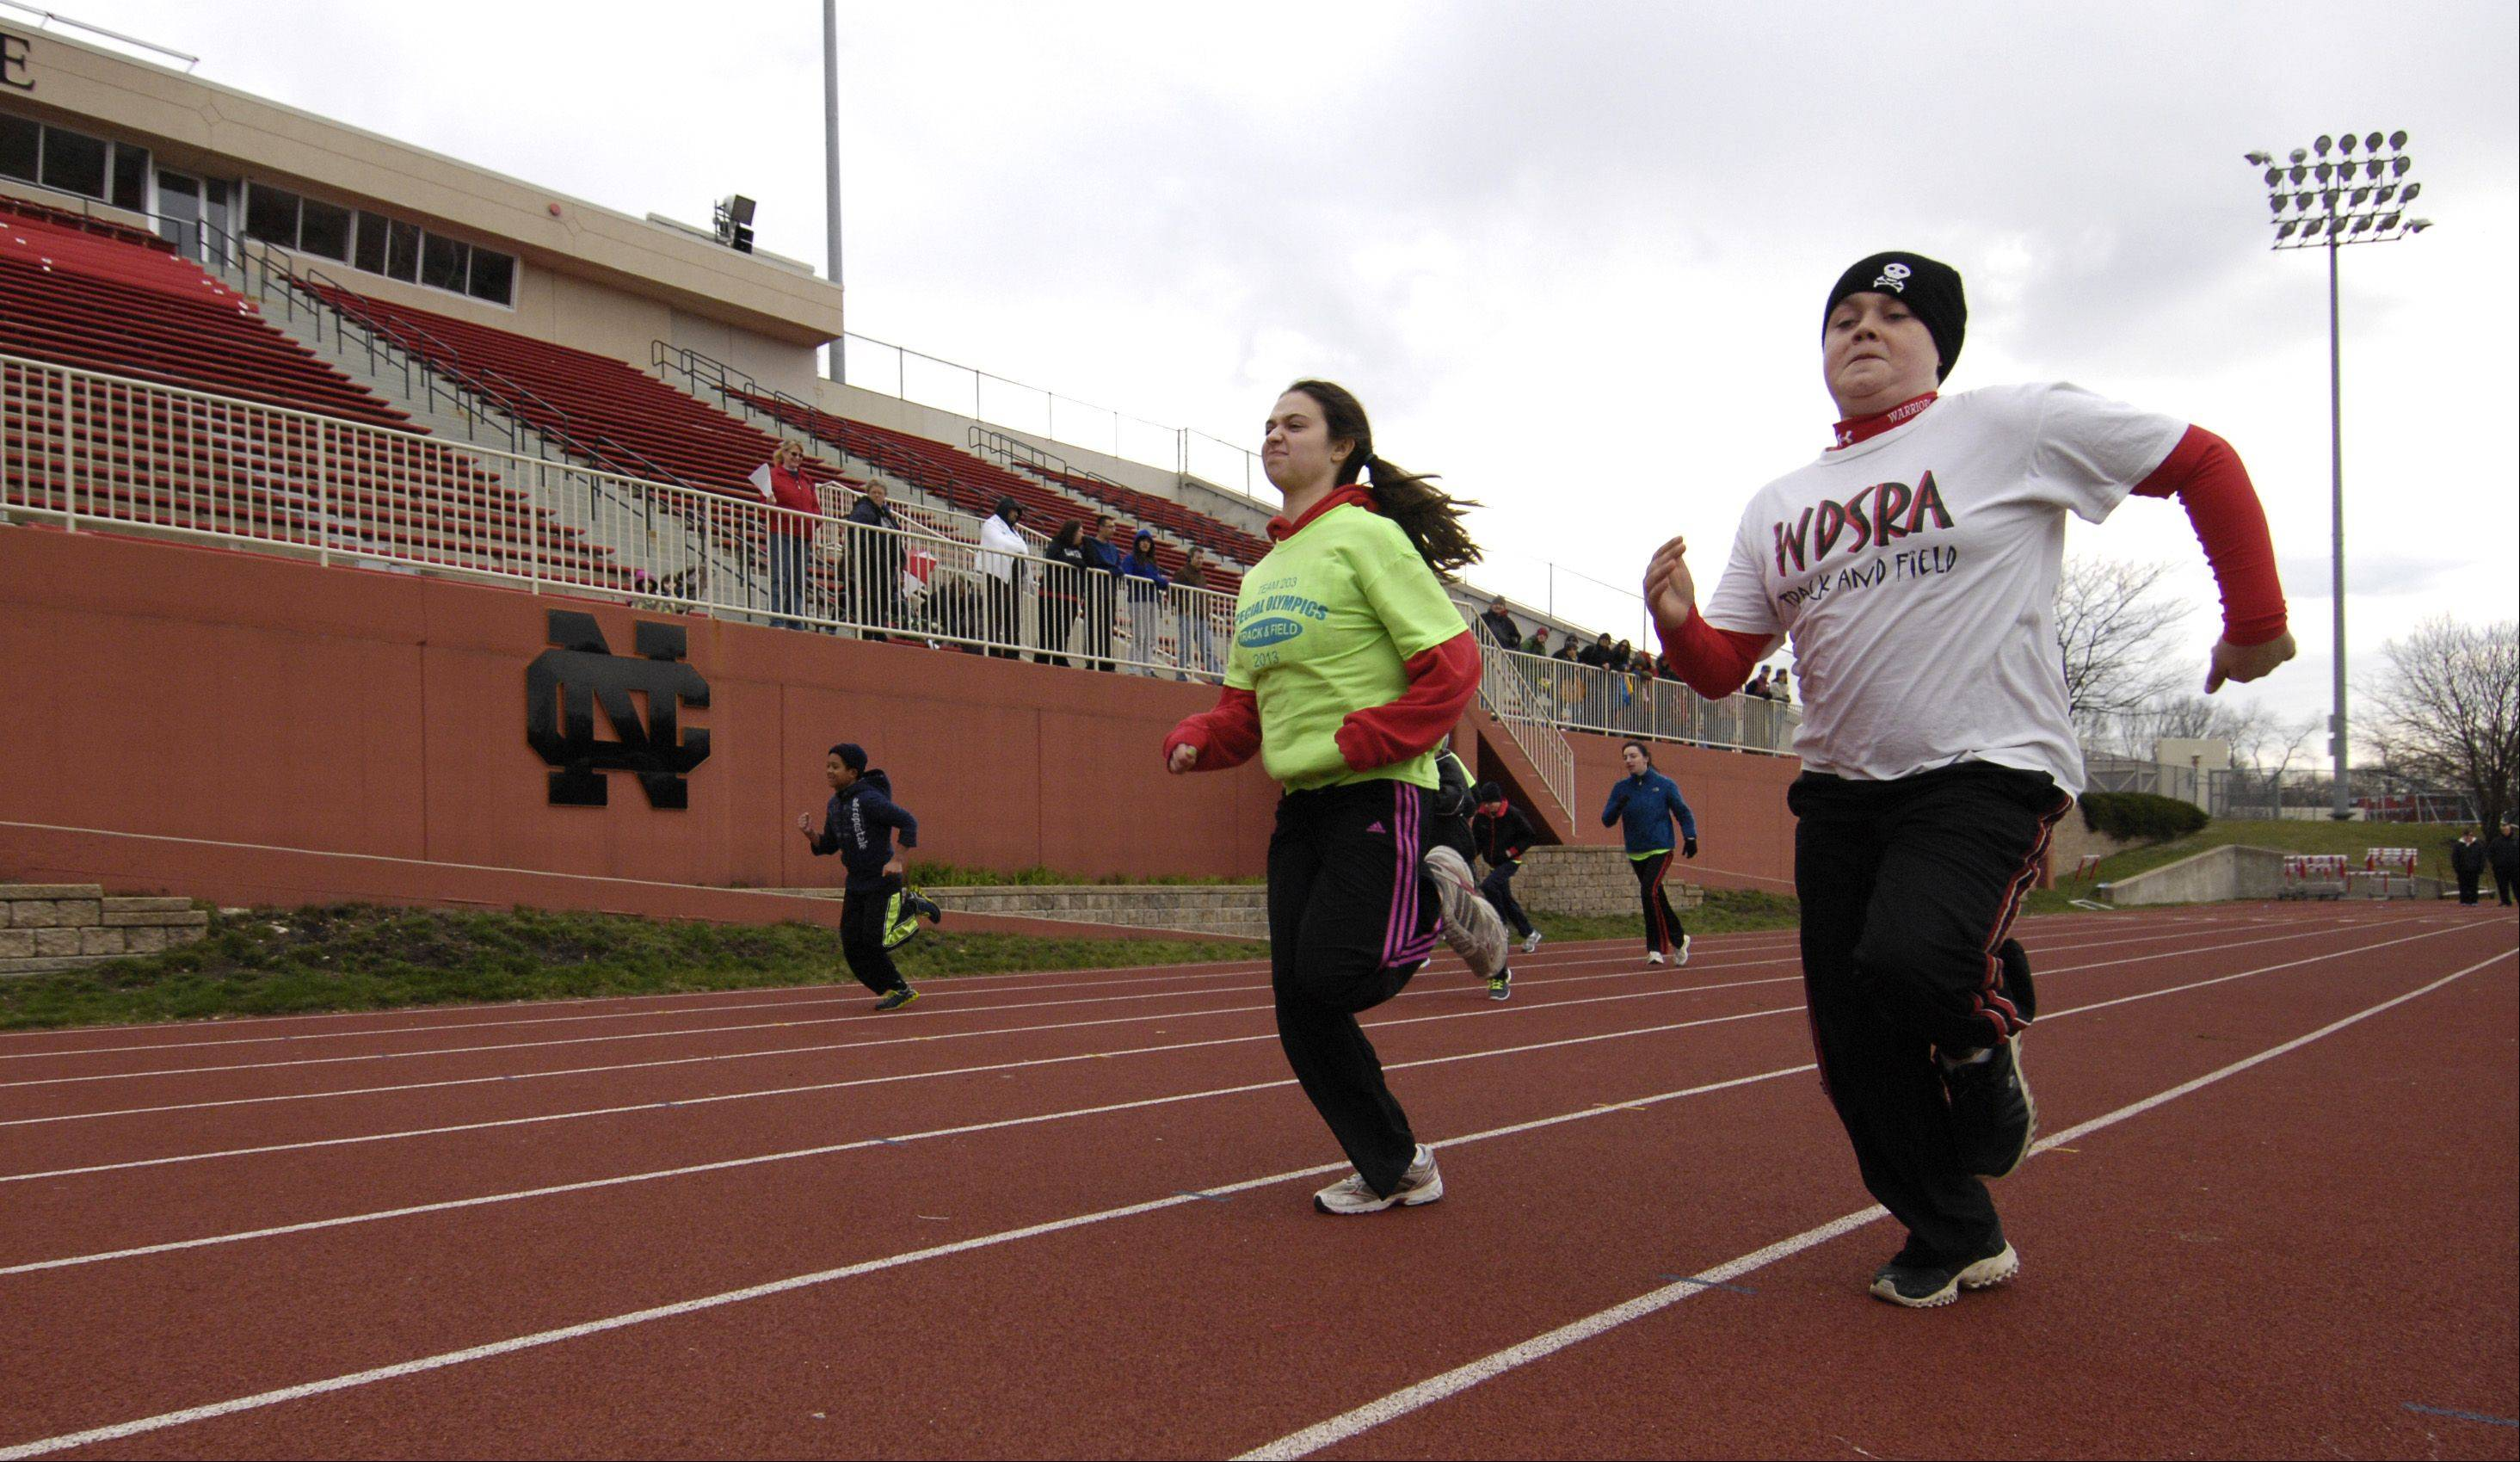 Jordan Pfauth, 13, of Carol Stream takes the inside lane in the 100-meter dash Sunday during the Western DuPage Special Recreation Association annual track and field meet at North Central College in Naperville. About 140 young athletes took part in the event.